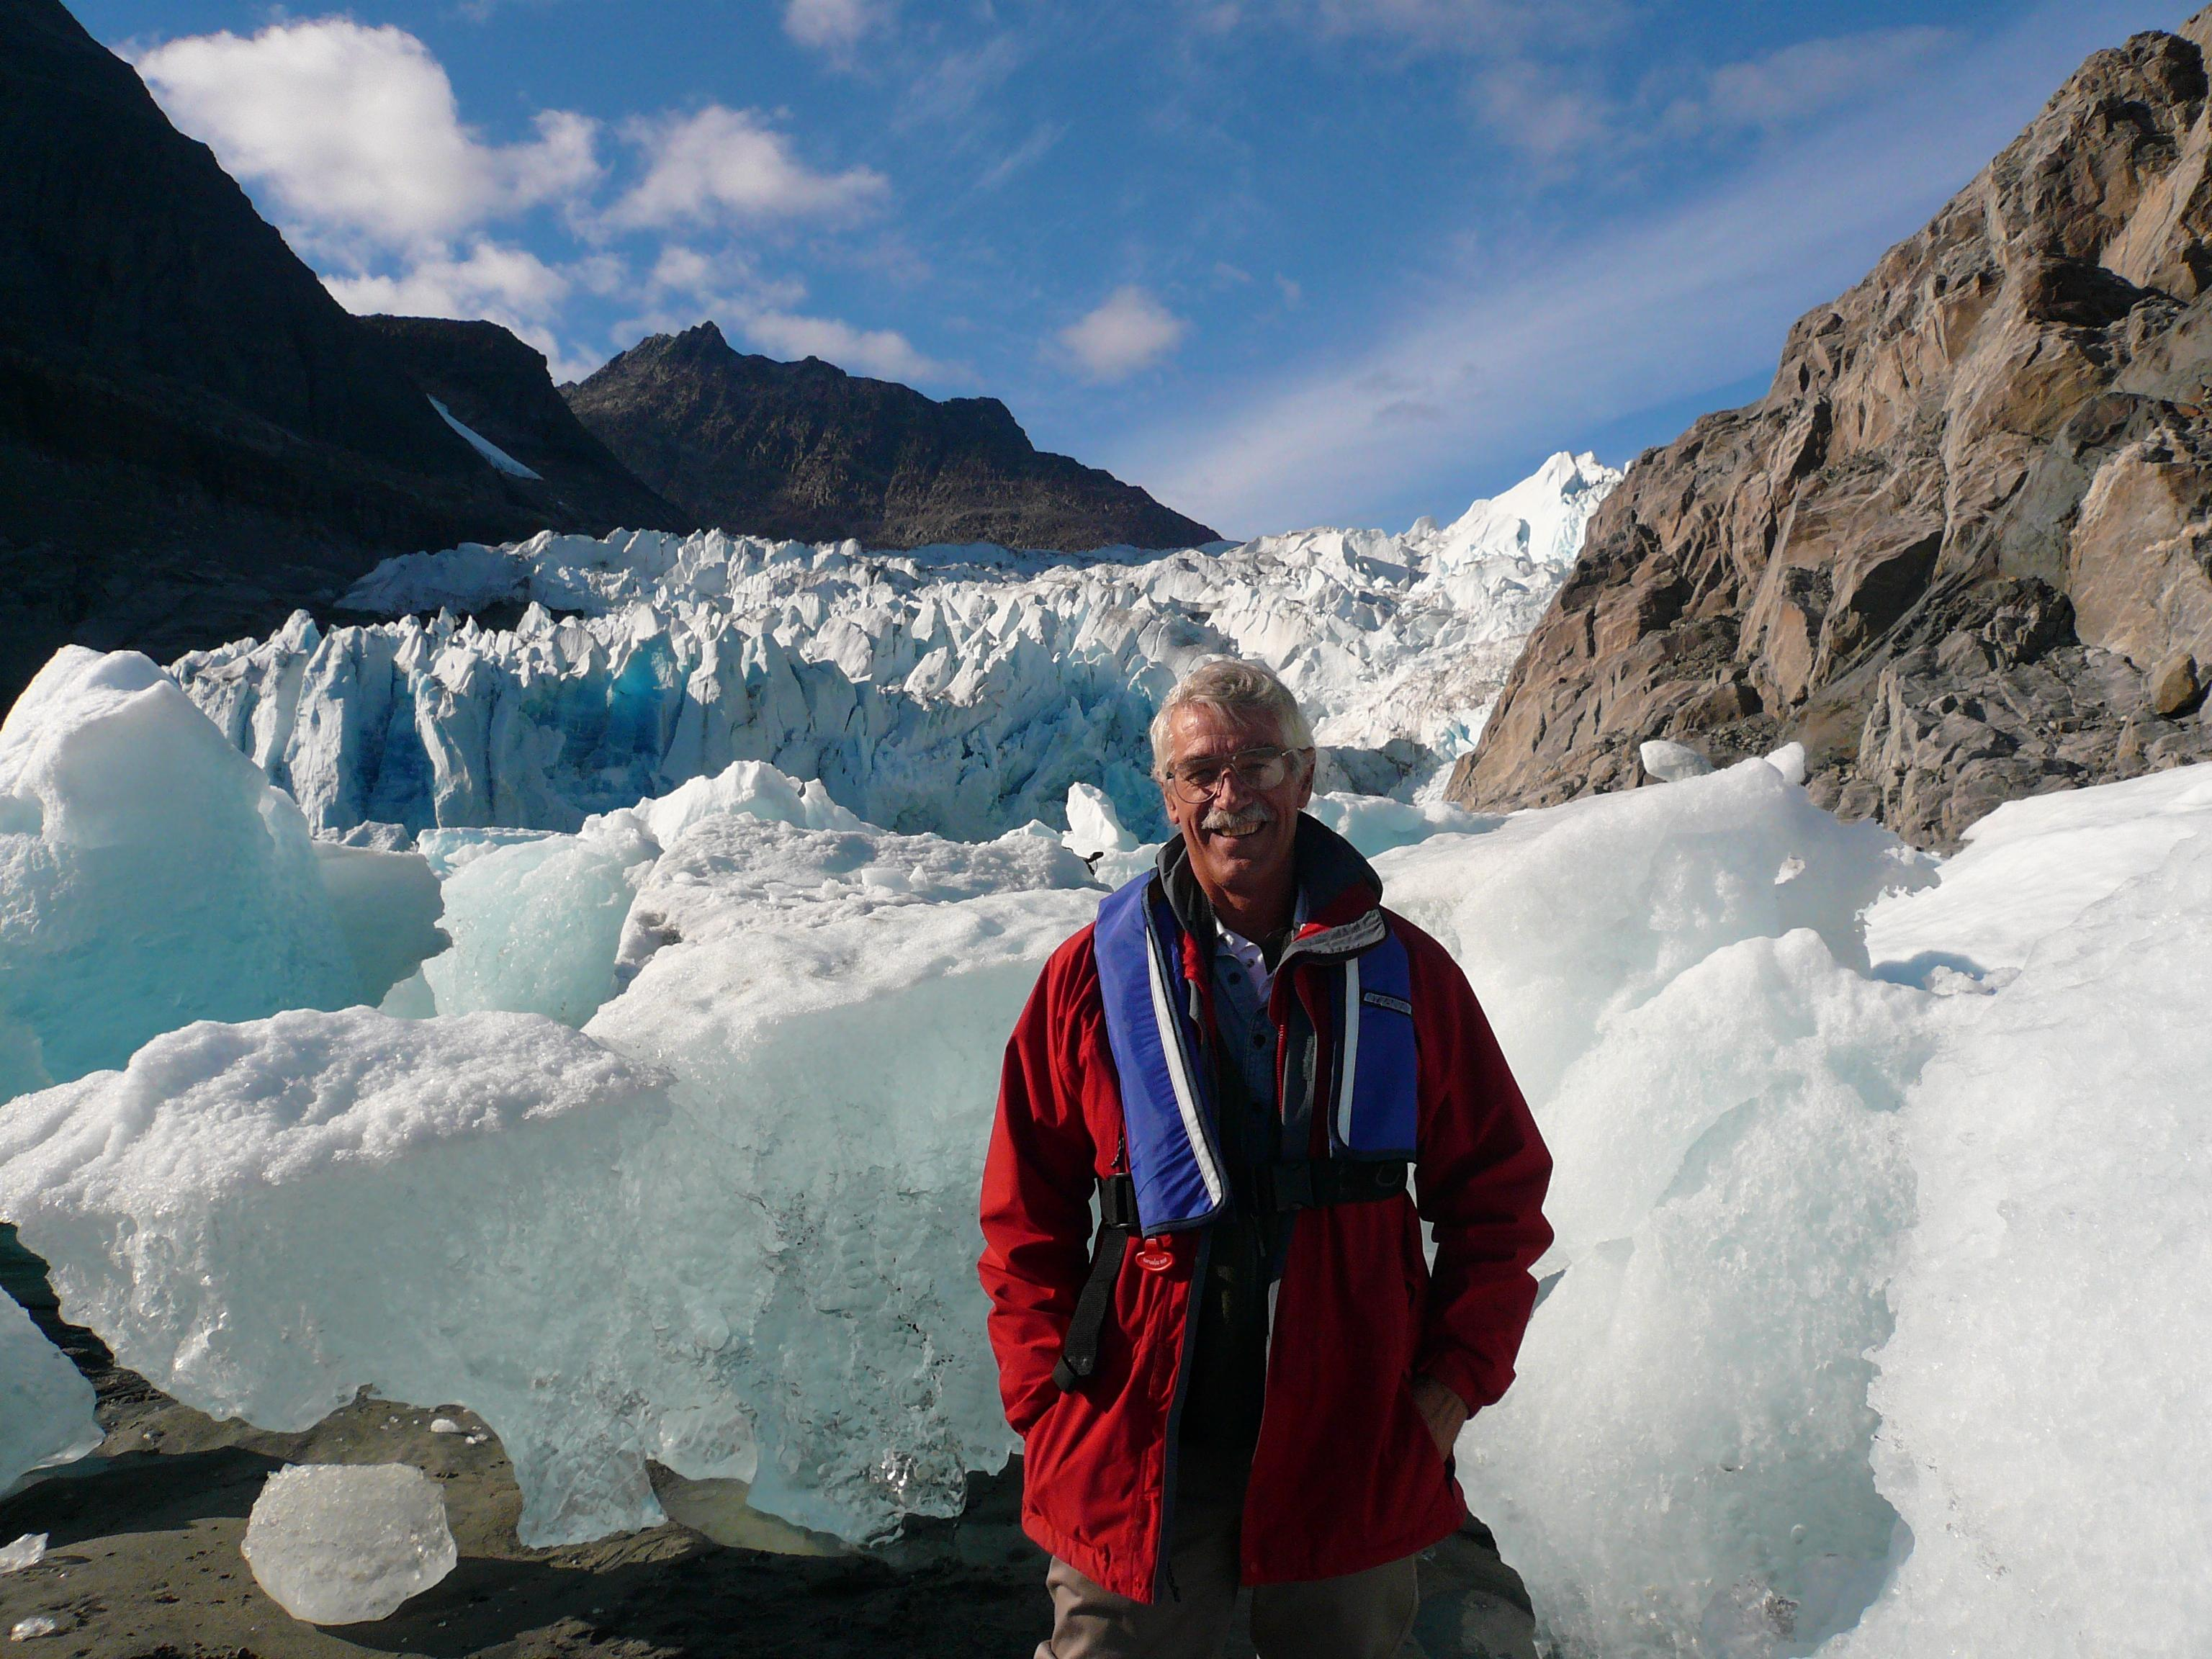 William Fitzhugh at Evighedfjord glacier, West Greenland, in September, 2010. Credit Elizabeth Graversen.